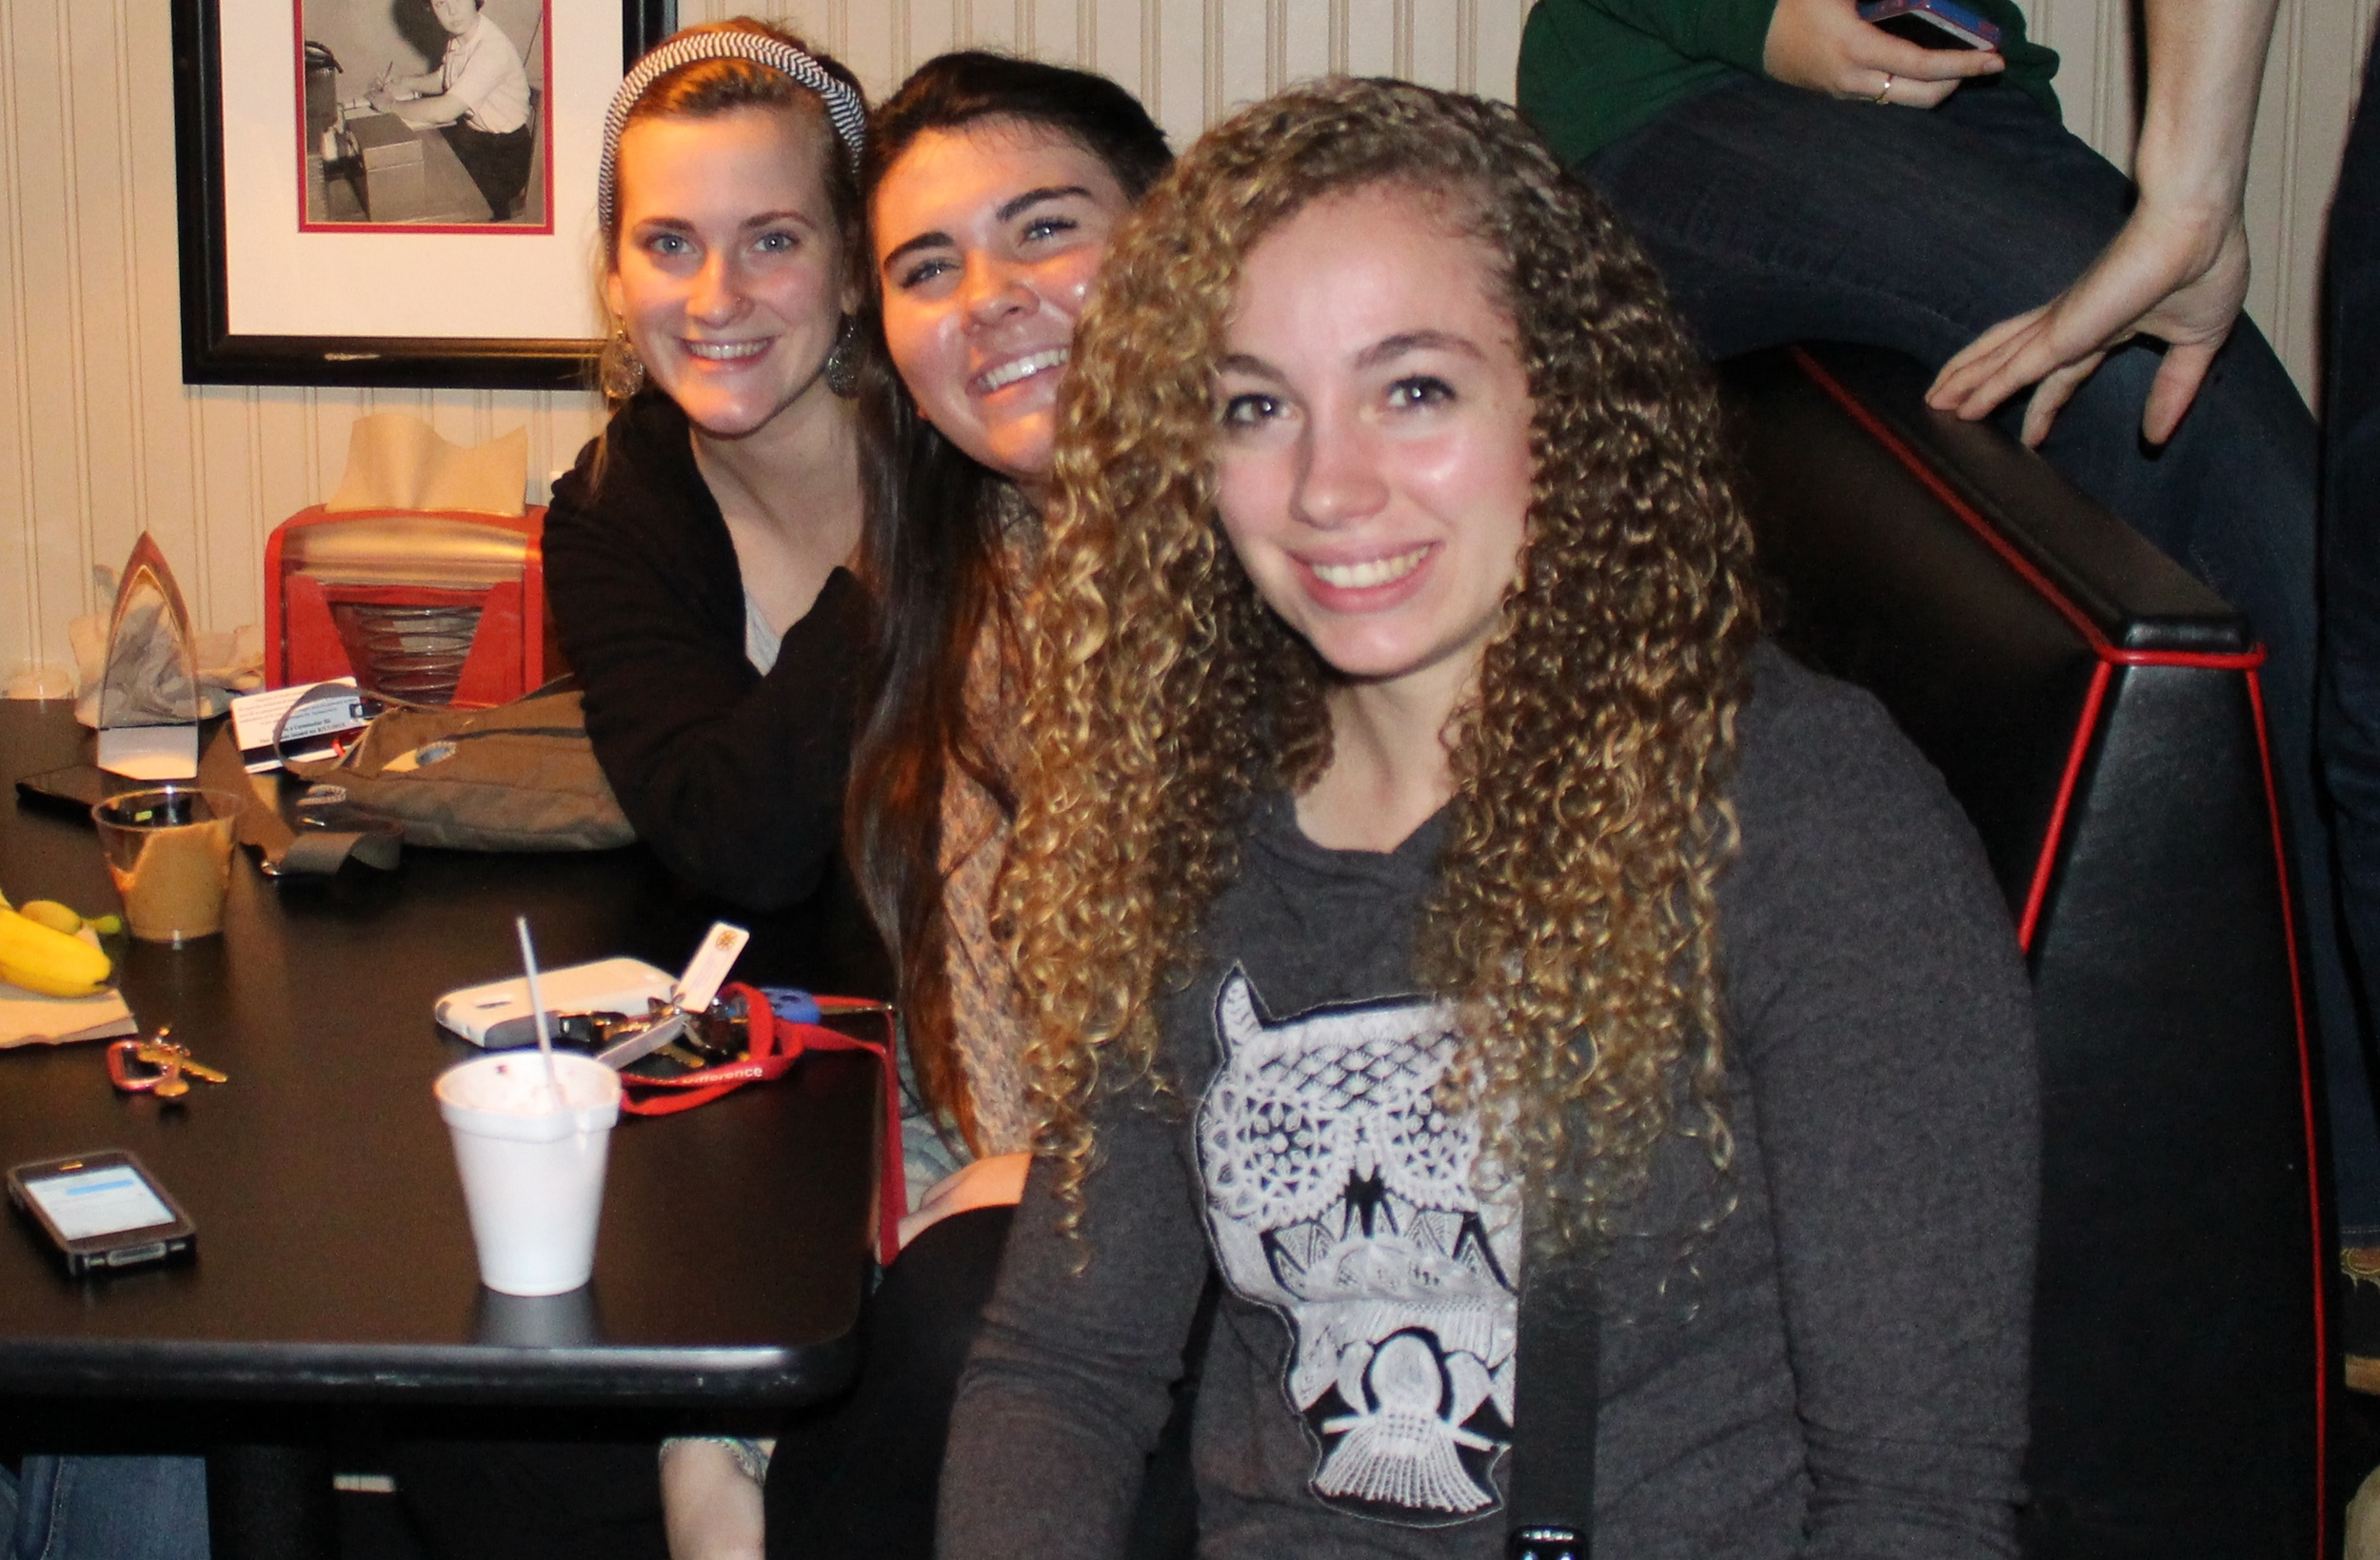 Emilie Russ, Caroline Cappell and Sarah Flook having a break from classes on Wednesday night.